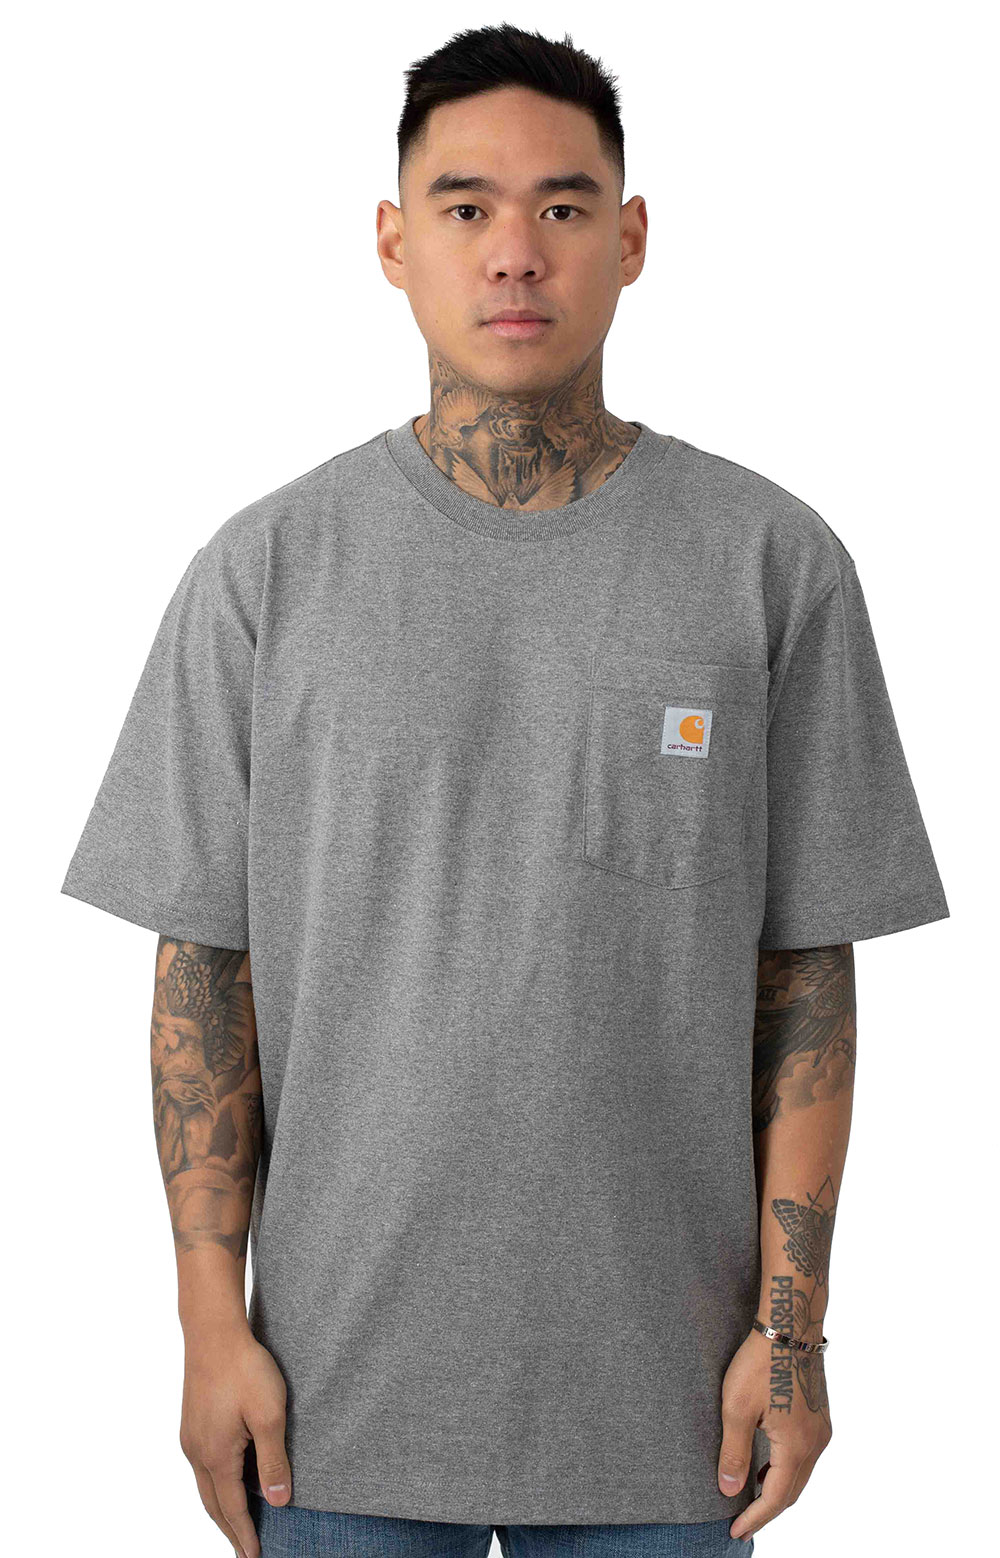 (103559) Workwear C Logo Graphic Pocket T-Shirt - Granite Heather